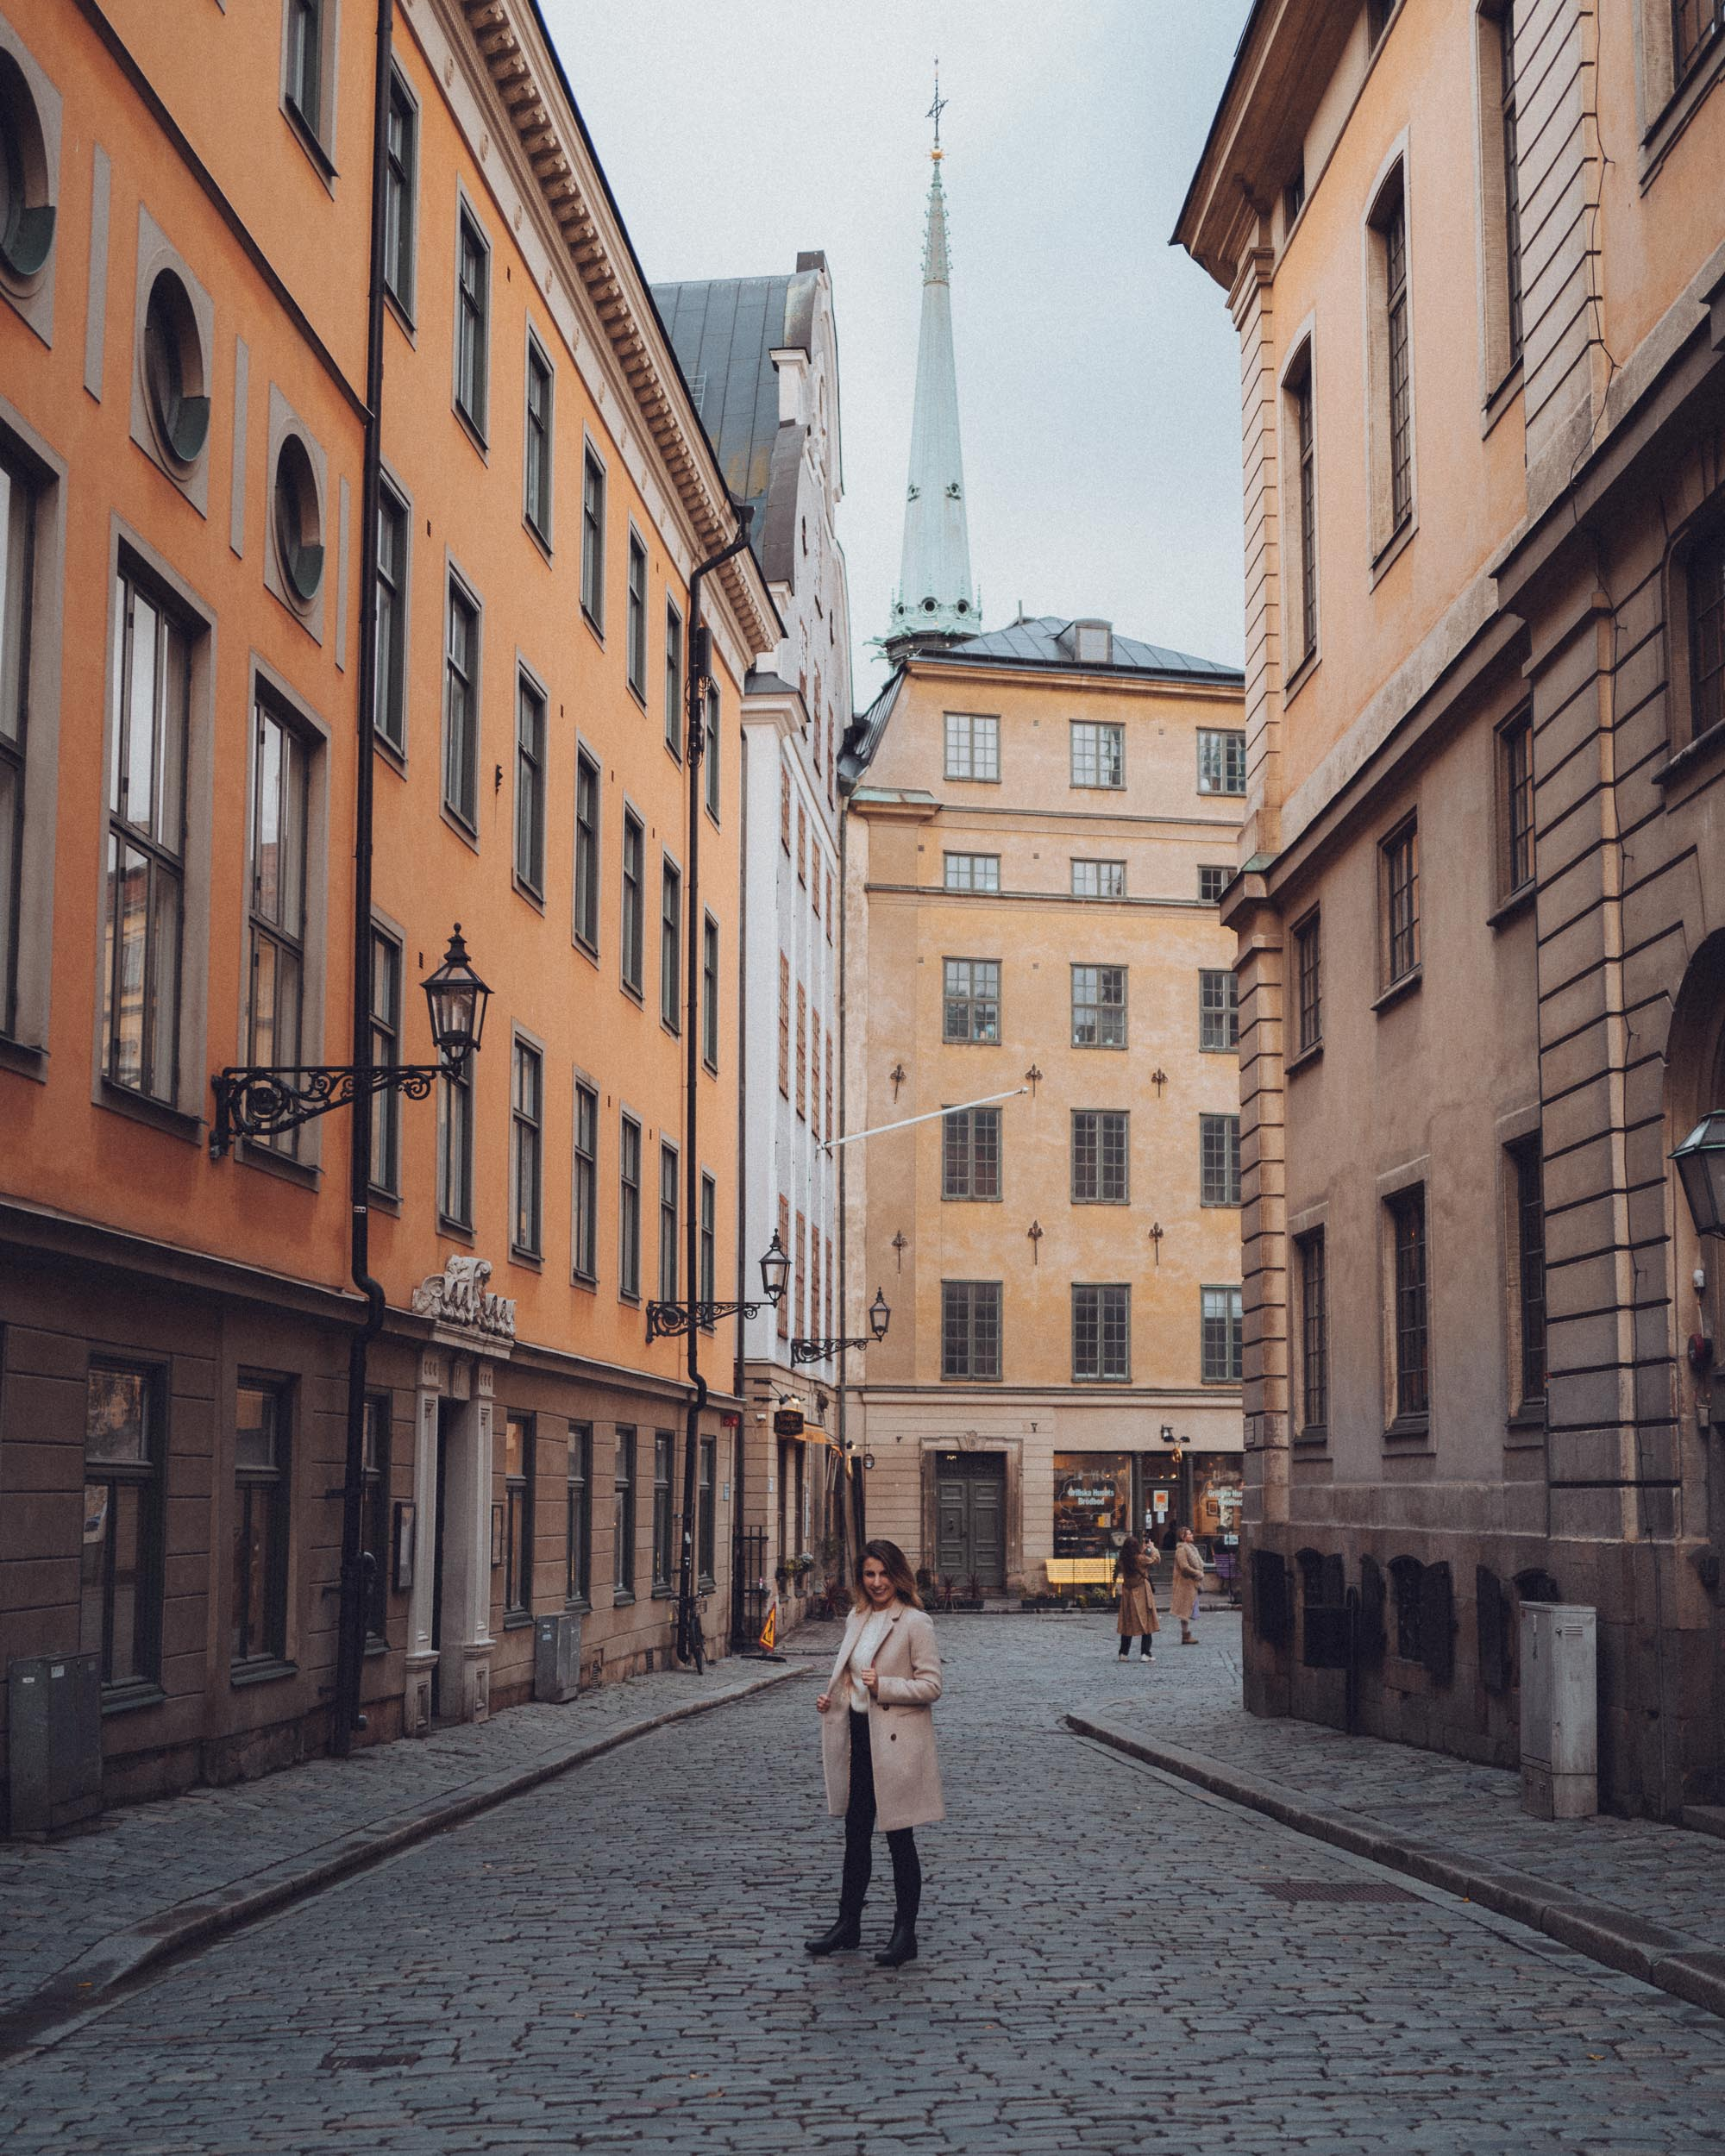 Old town Gamla Stan in Stockholm, Sweden - A Small Luxury Hotel